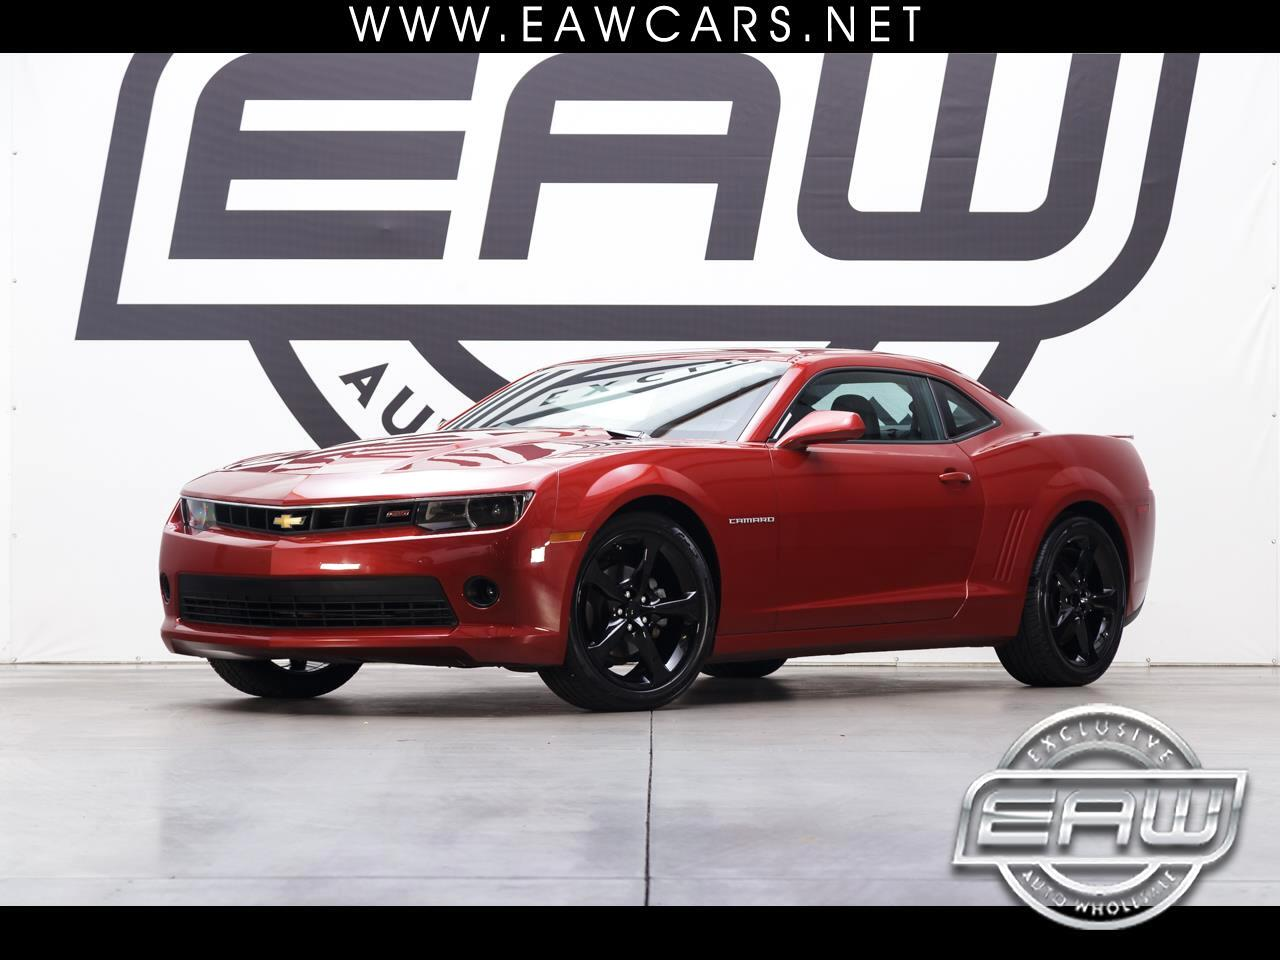 2015 Chevrolet Camaro 2LT COUPE RS